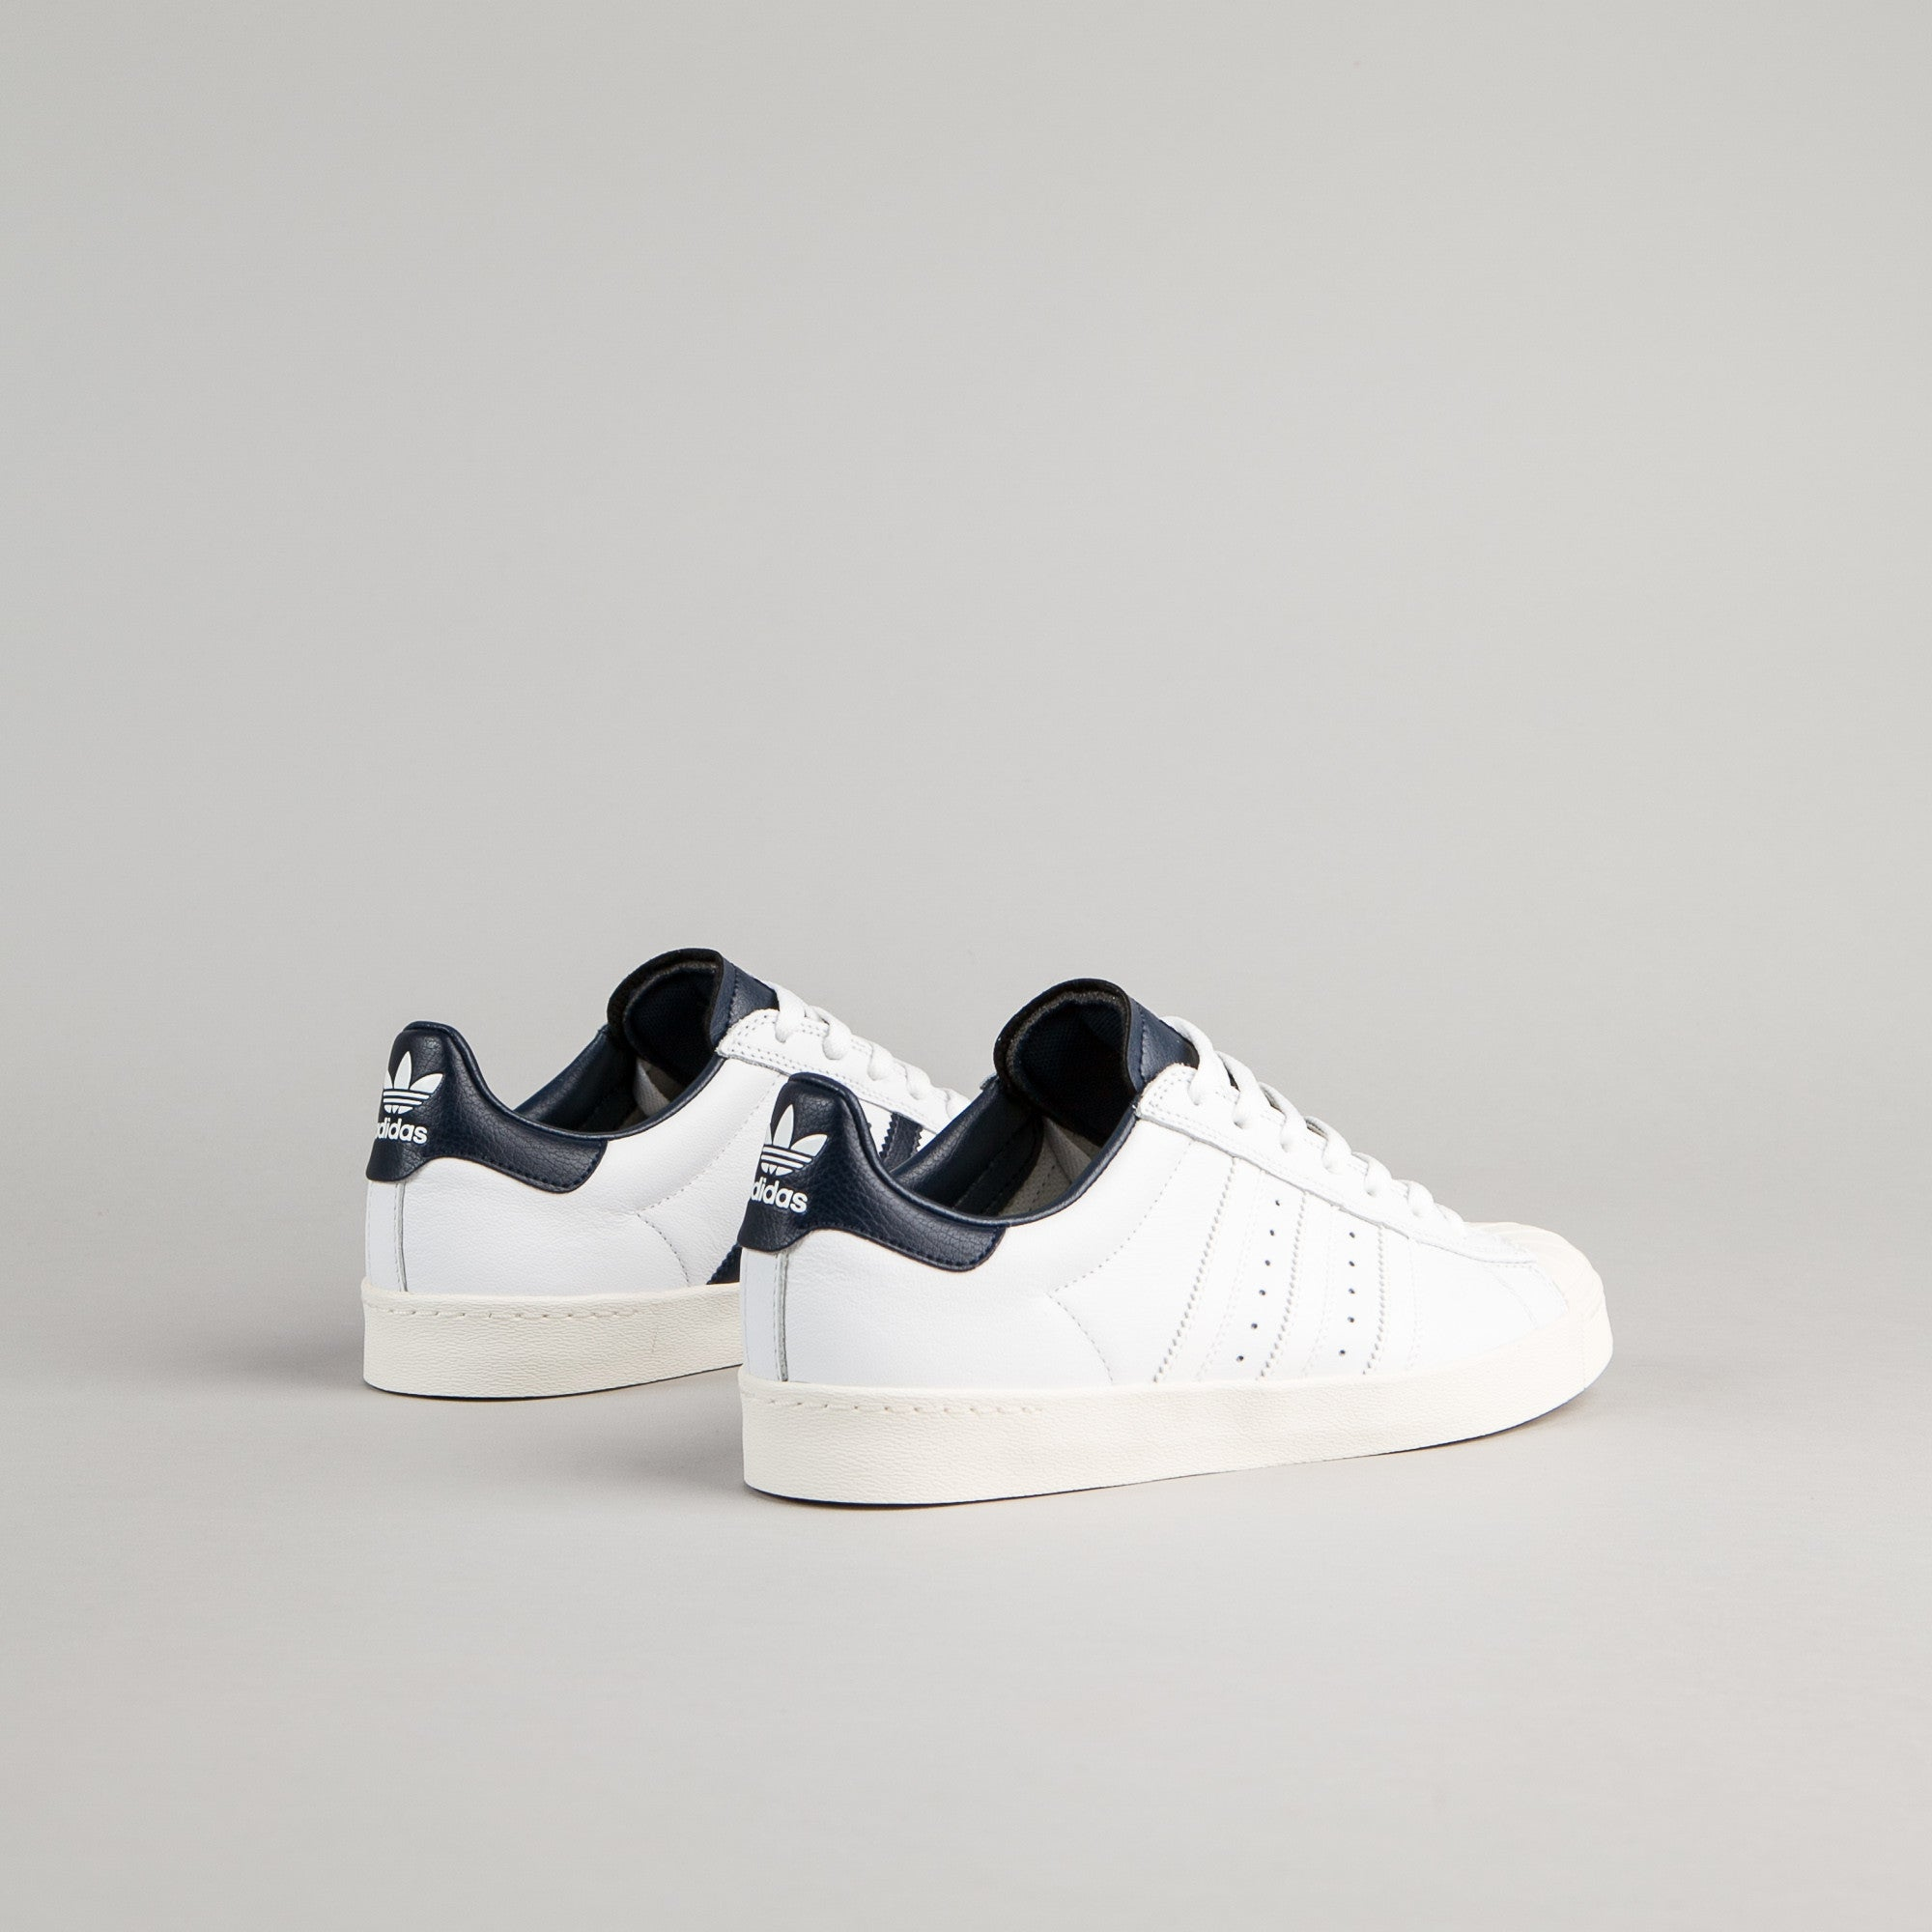 Cheap Adidas Superstar Vulc ADV Skate Shoes Free Shipping Tactics